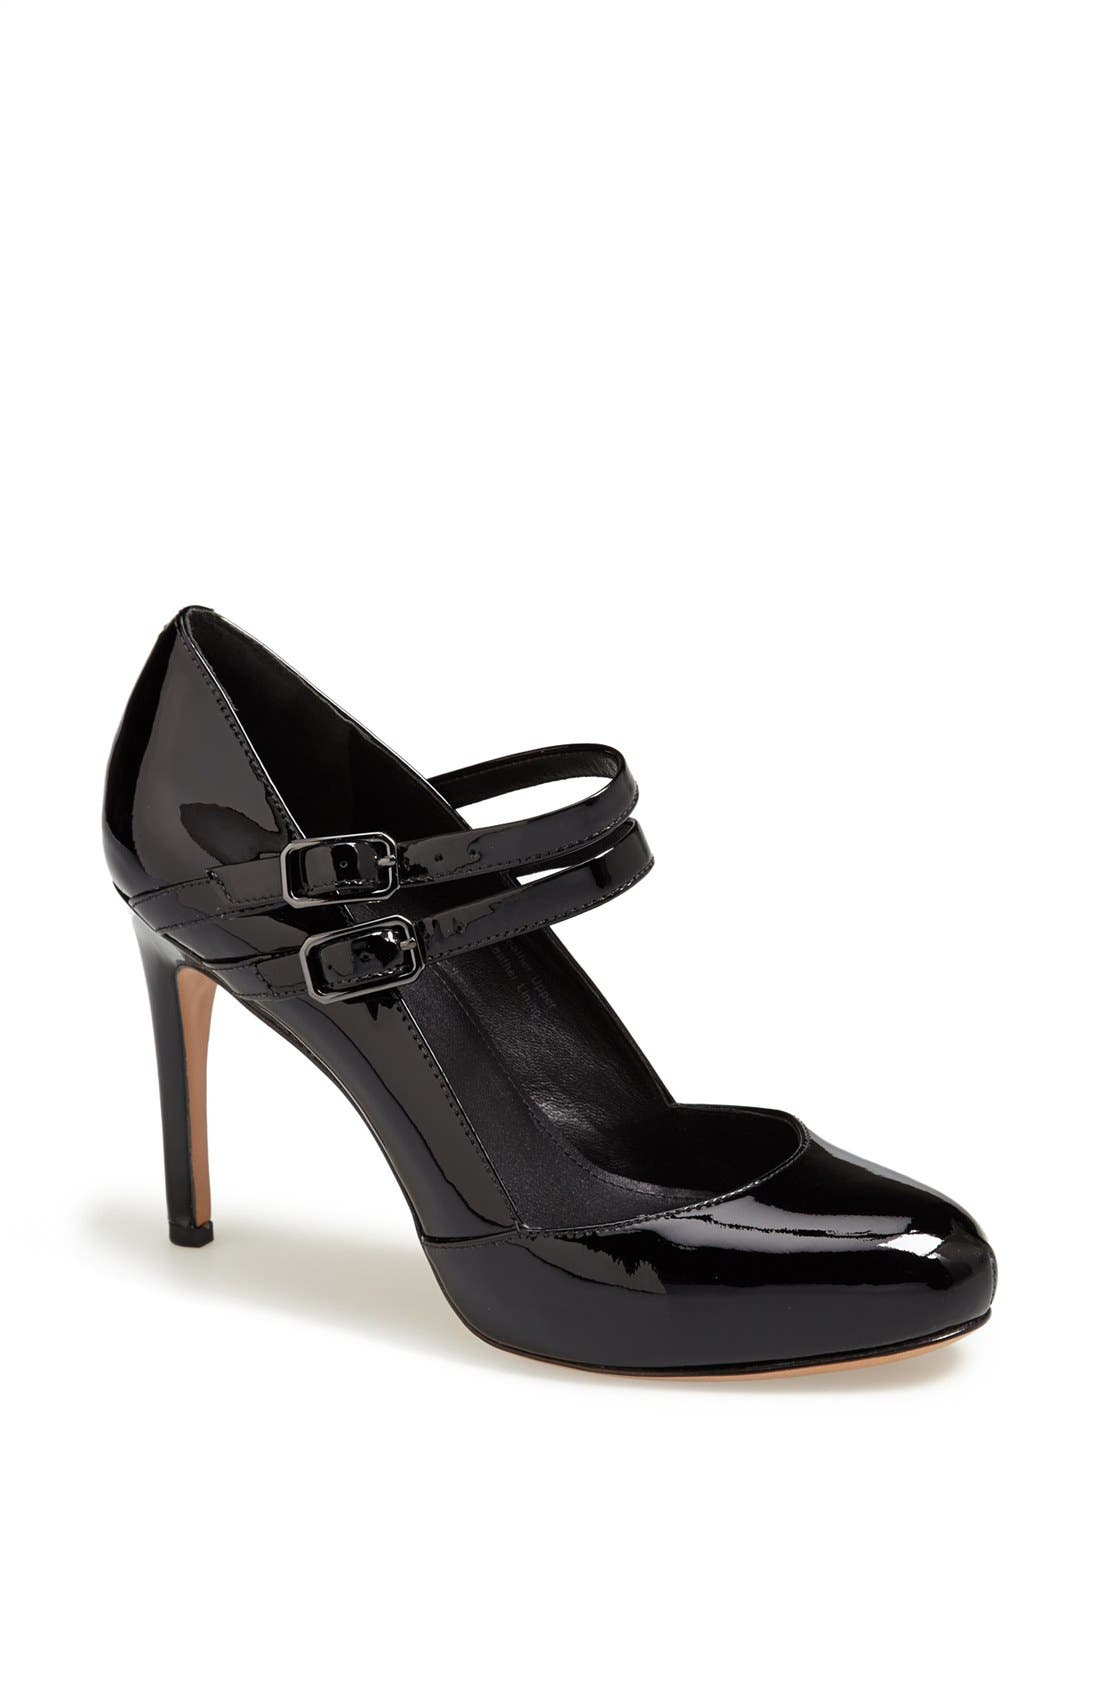 Main Image - Via Spiga 'Ballard' Mary Jane Pump